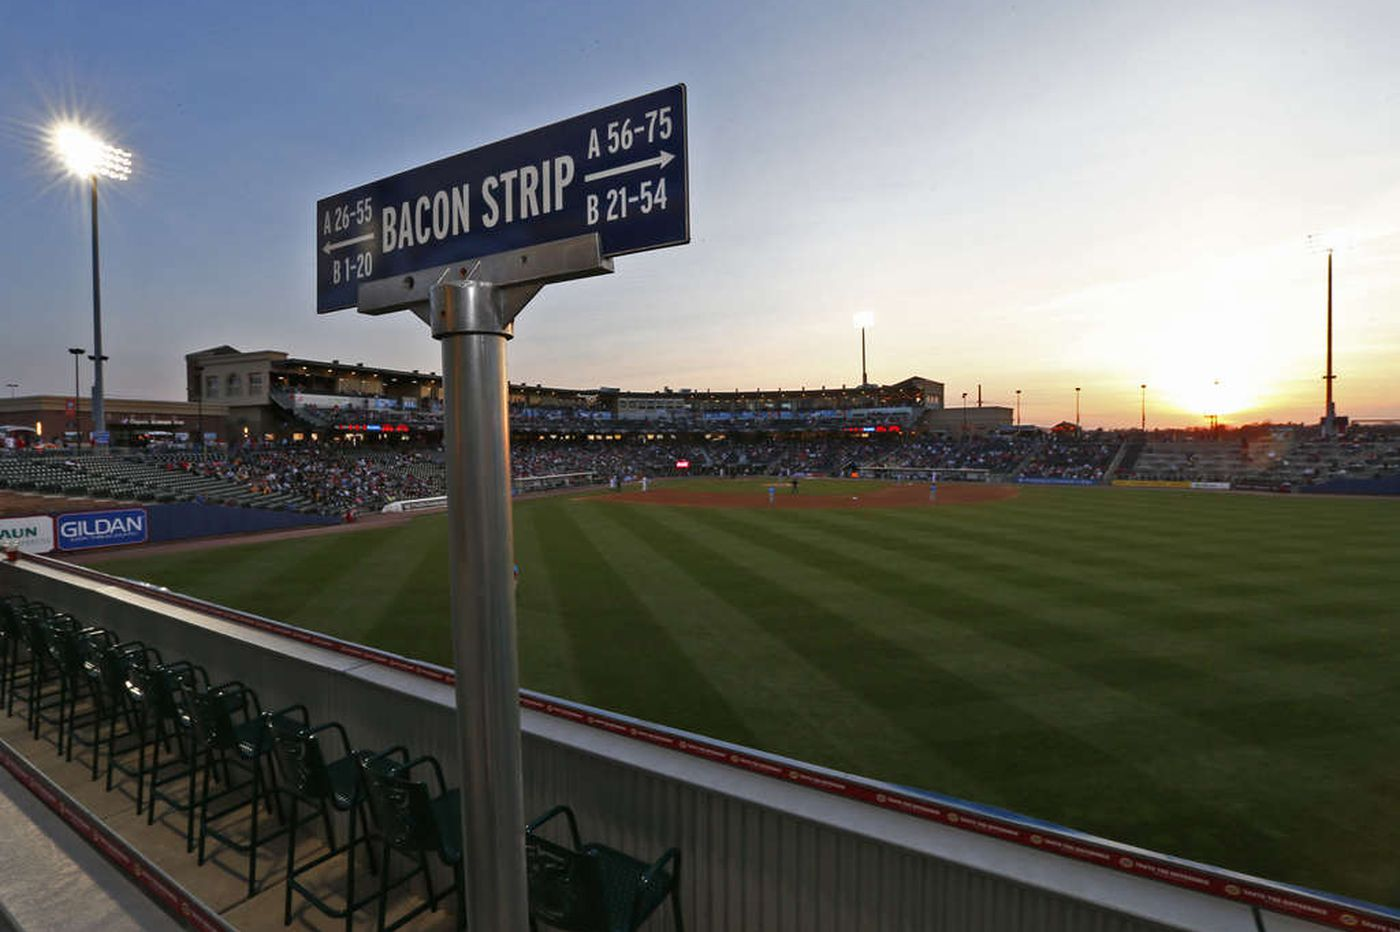 Boy, 10, shot in leg in freak incident on 'Harry Potter Night' at IronPigs game in Allentown